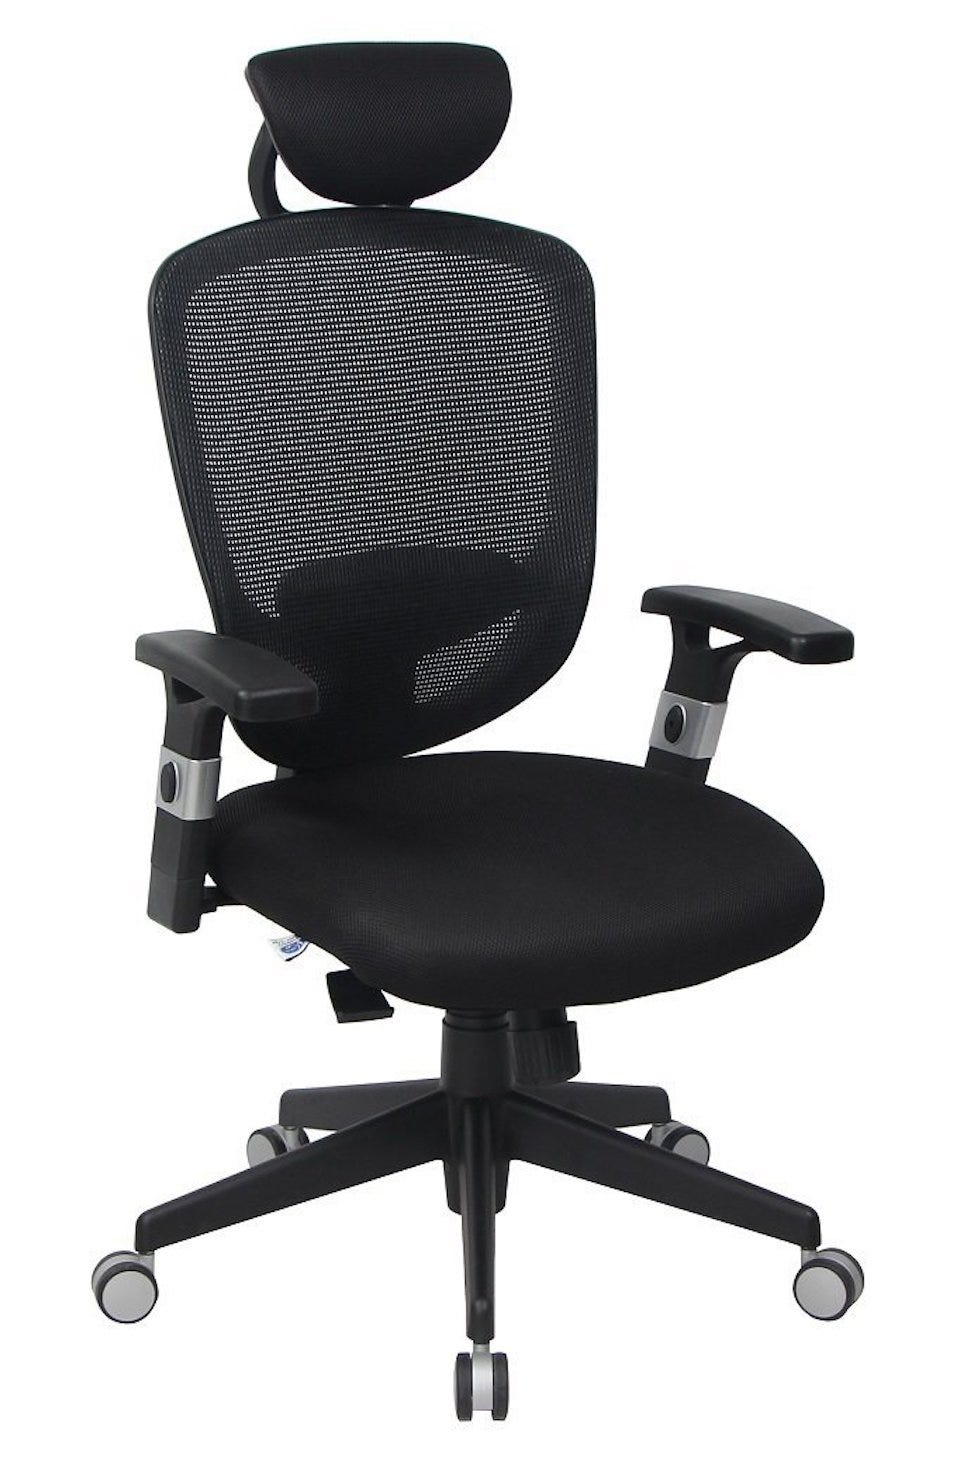 Phenomenal The 7 Best Budget Office Chairs For Every Need Review Geek Pdpeps Interior Chair Design Pdpepsorg